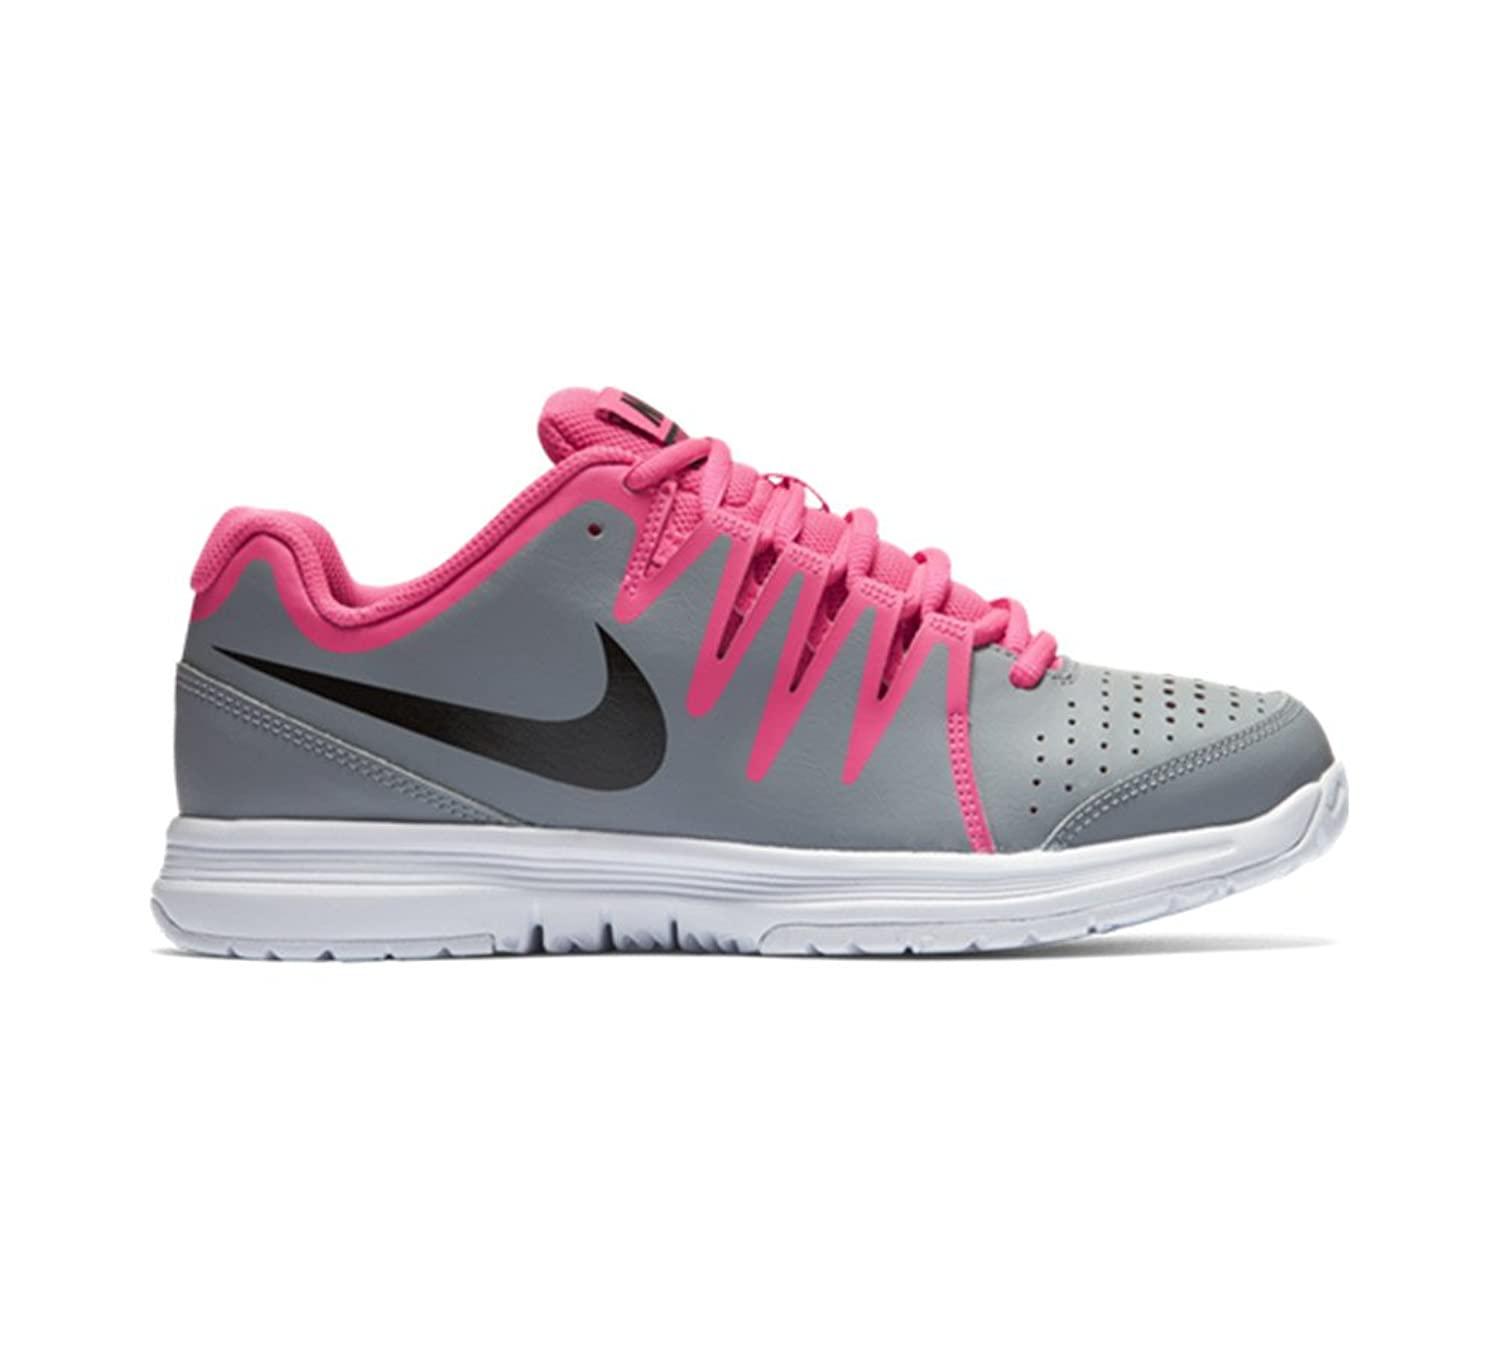 Nike Vapor Court Women